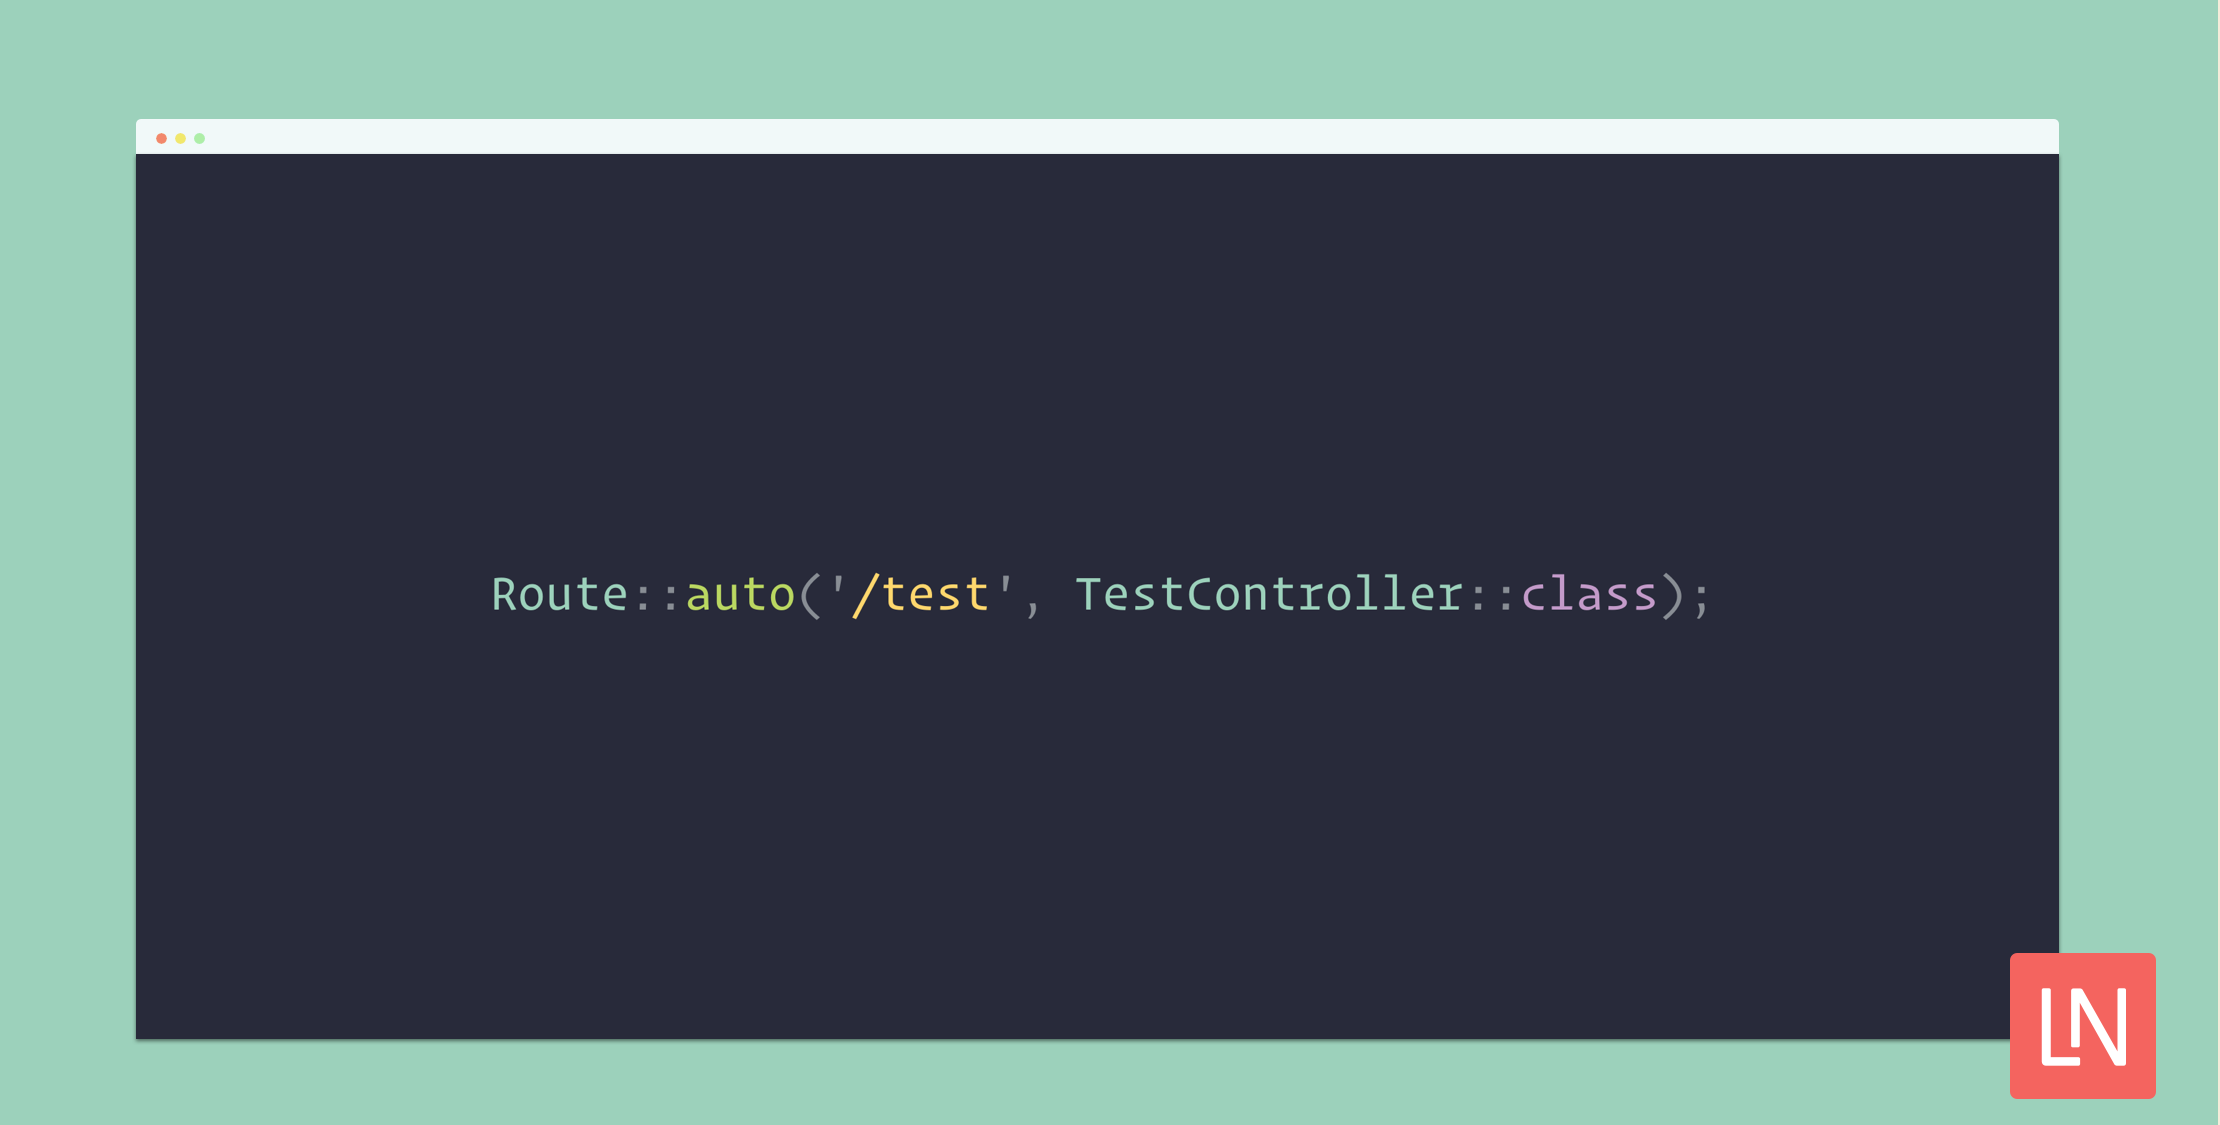 laravel-auto-routes-featured.png